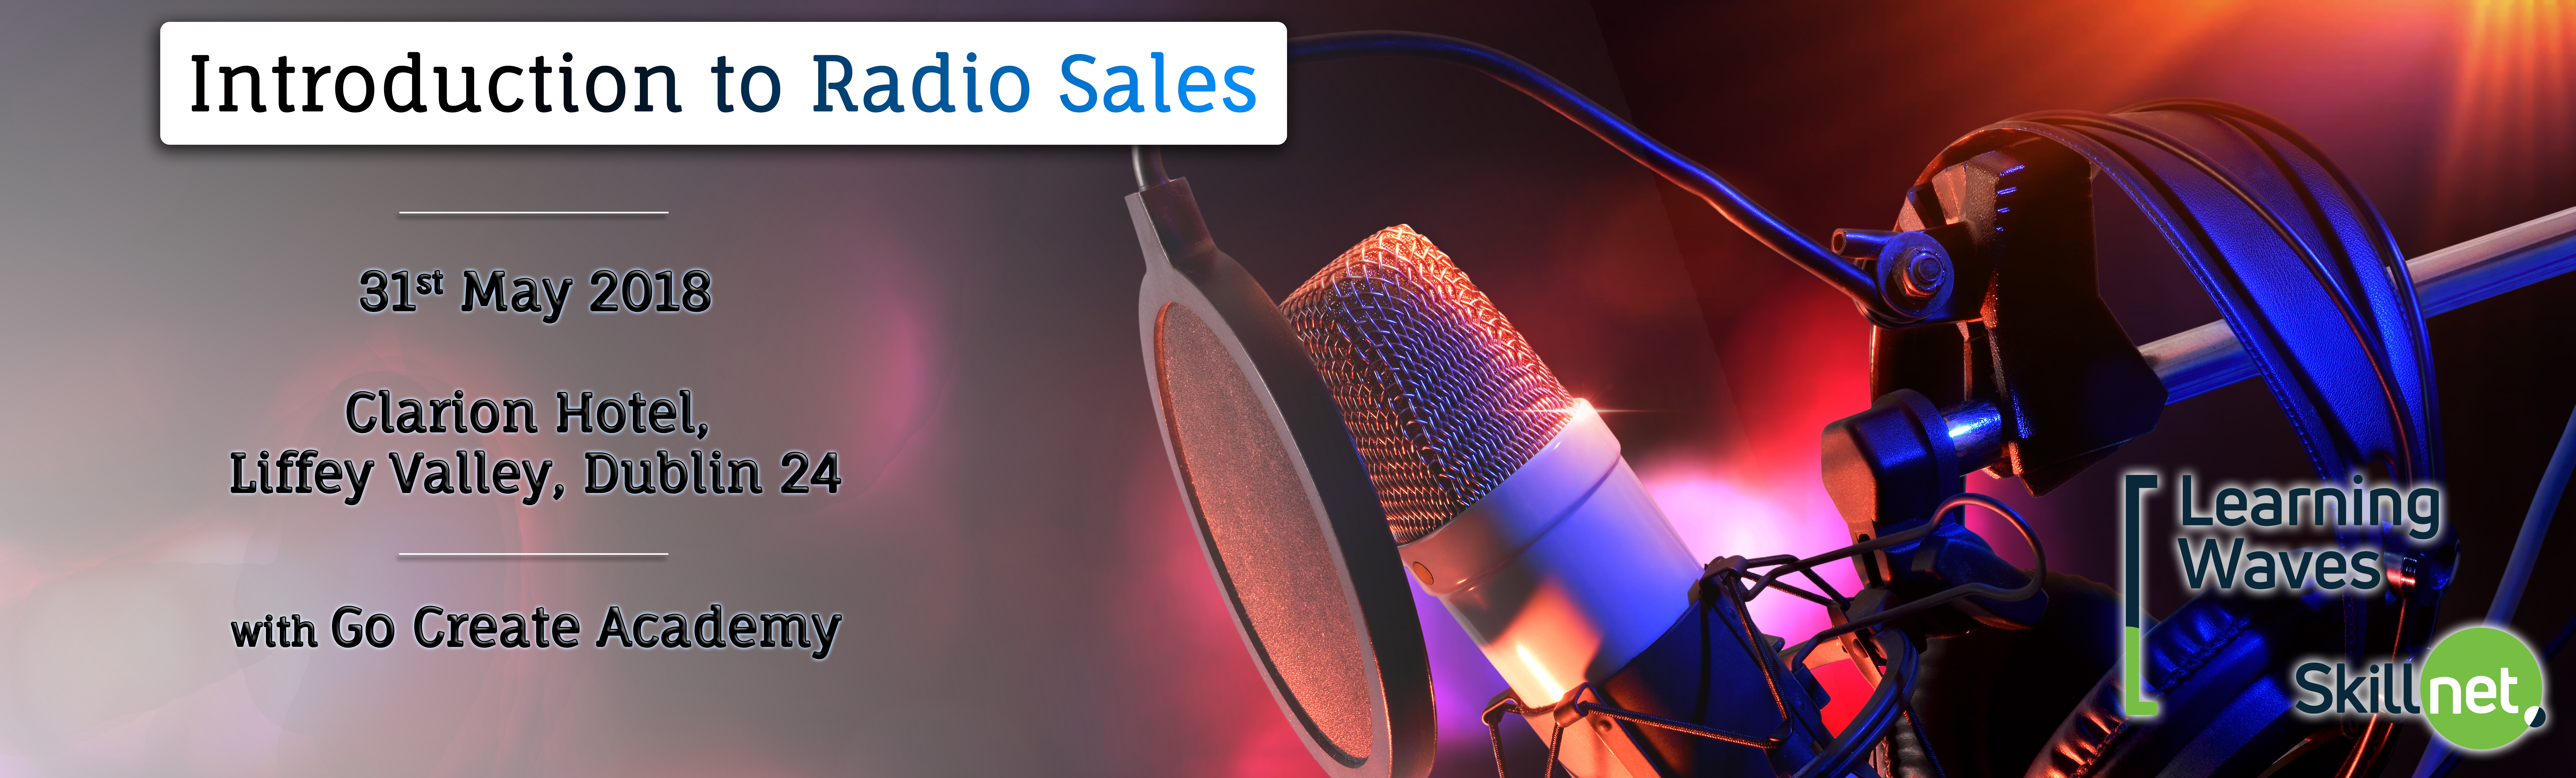 Introduction To Radio Sales